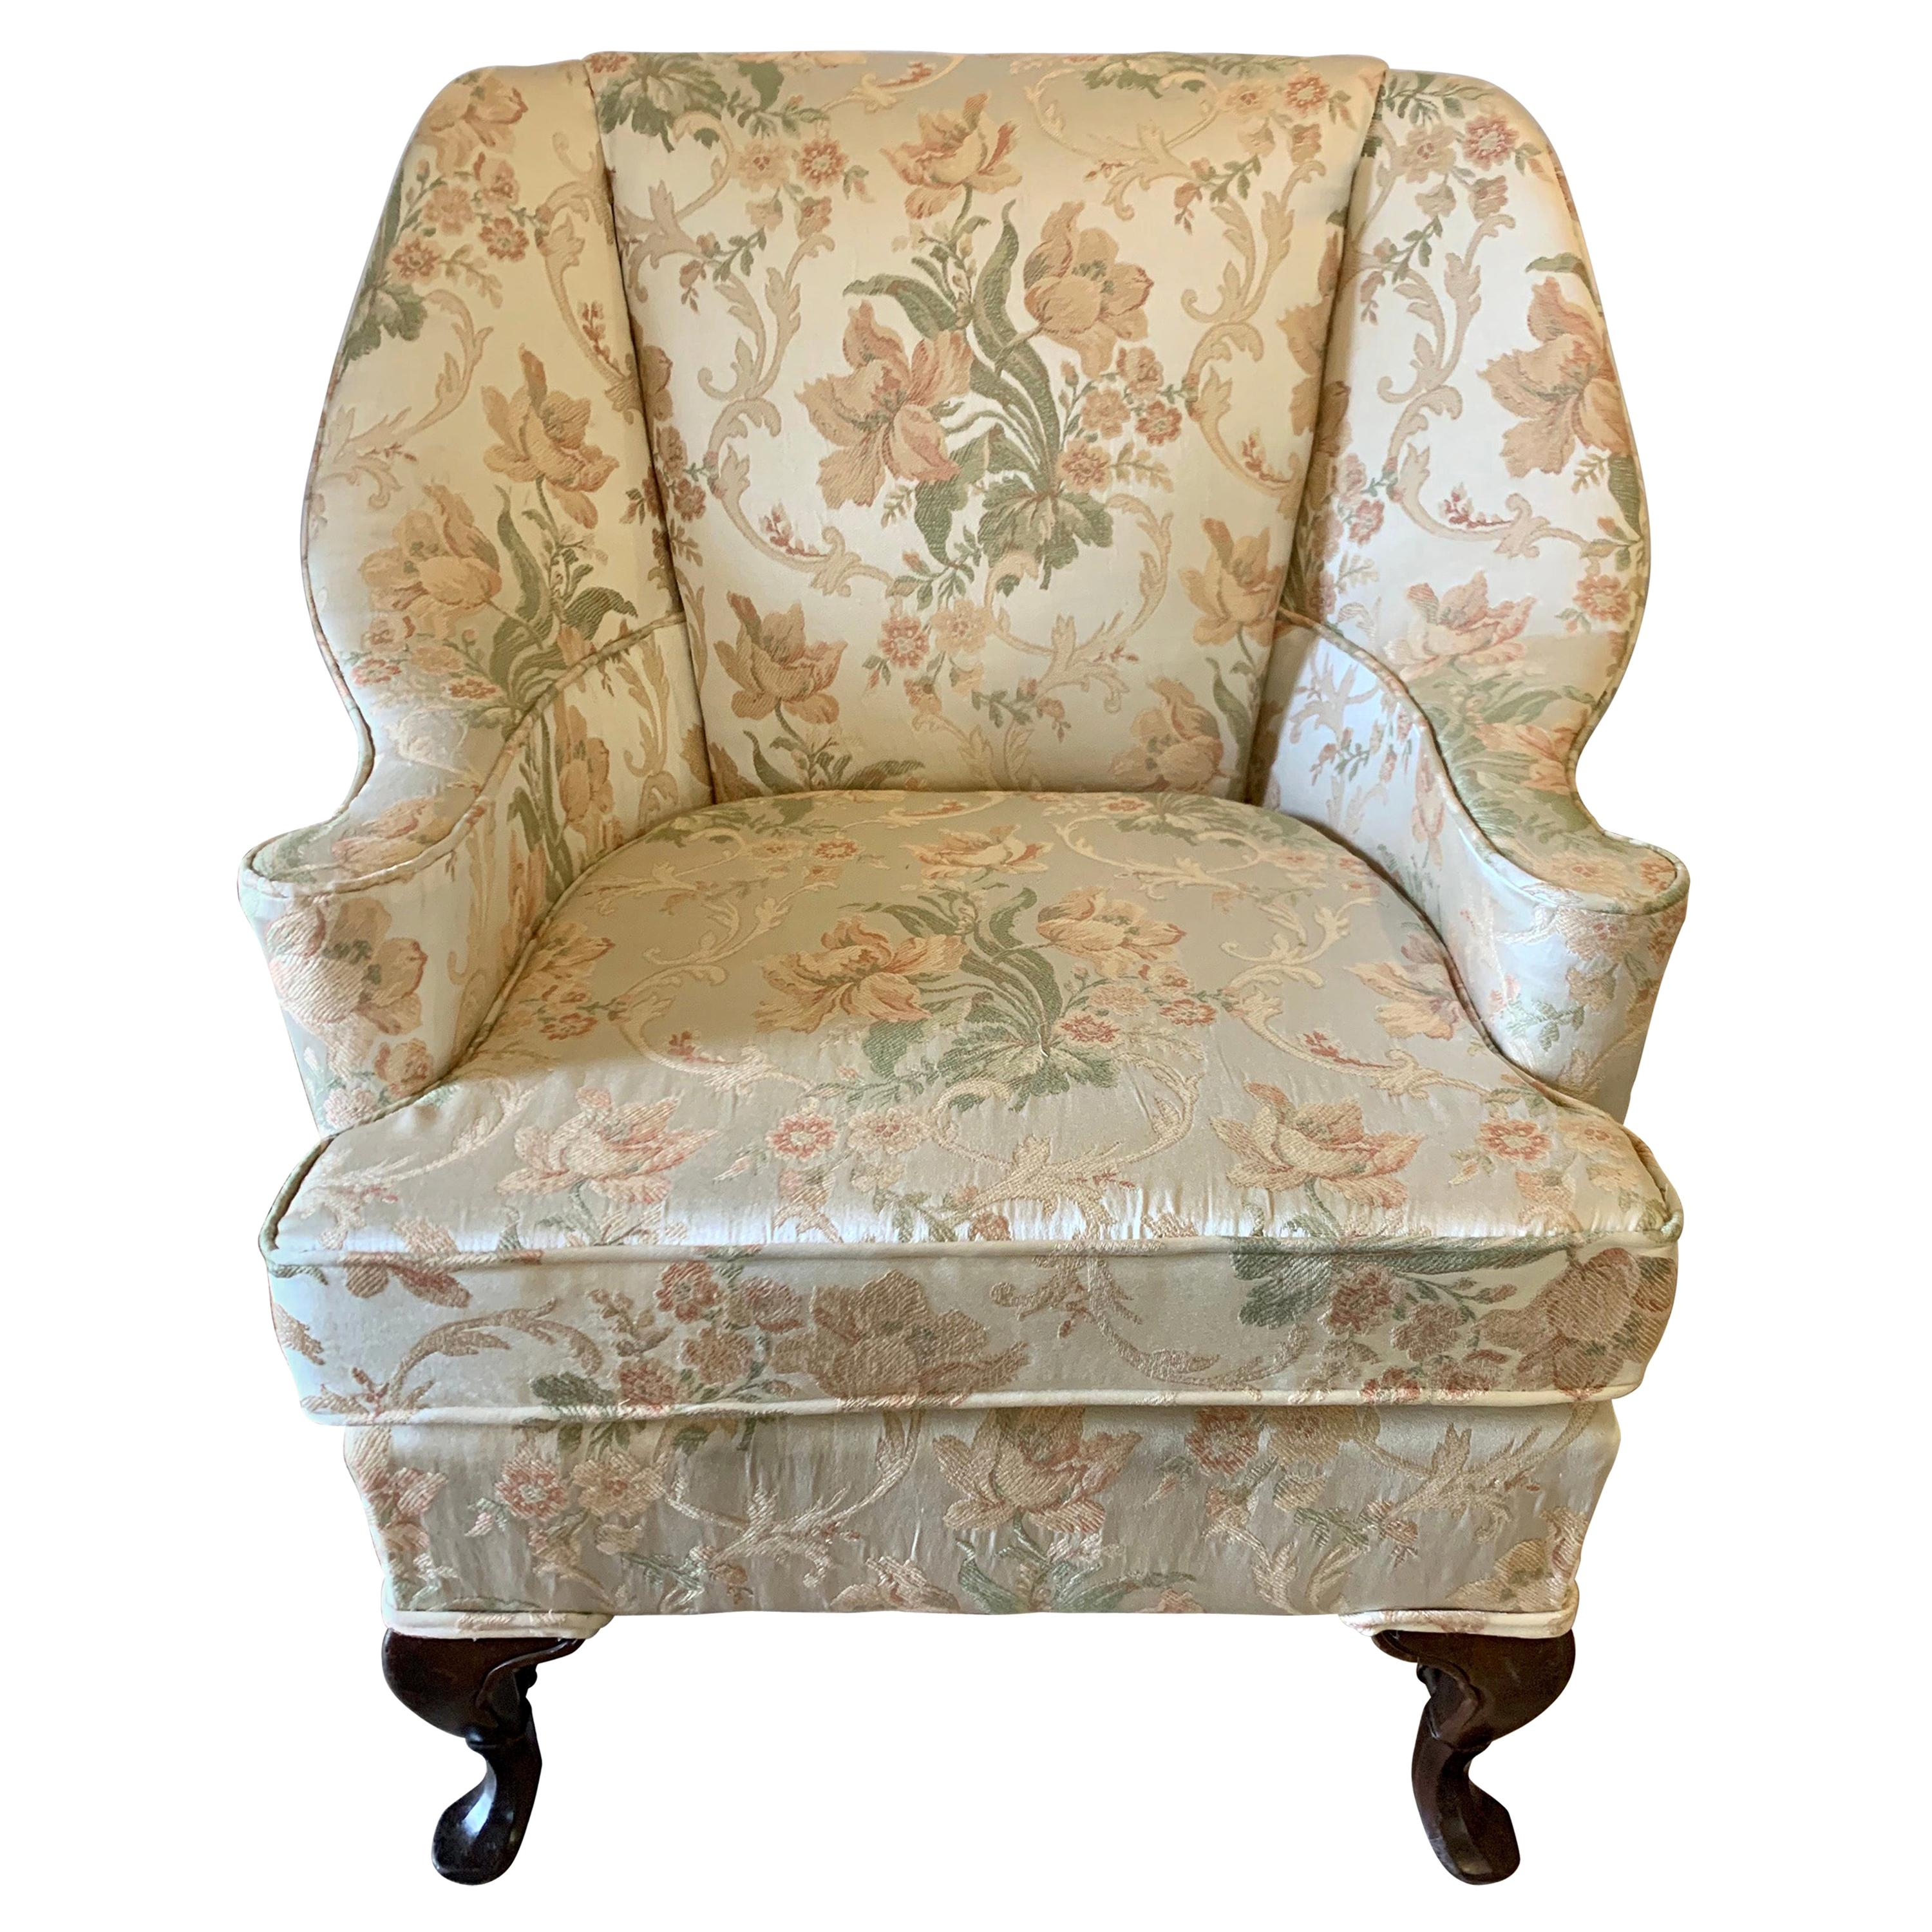 Hepplewhite Grand Wingback Armchair Newly Upholstered in Scalamandre Fabric